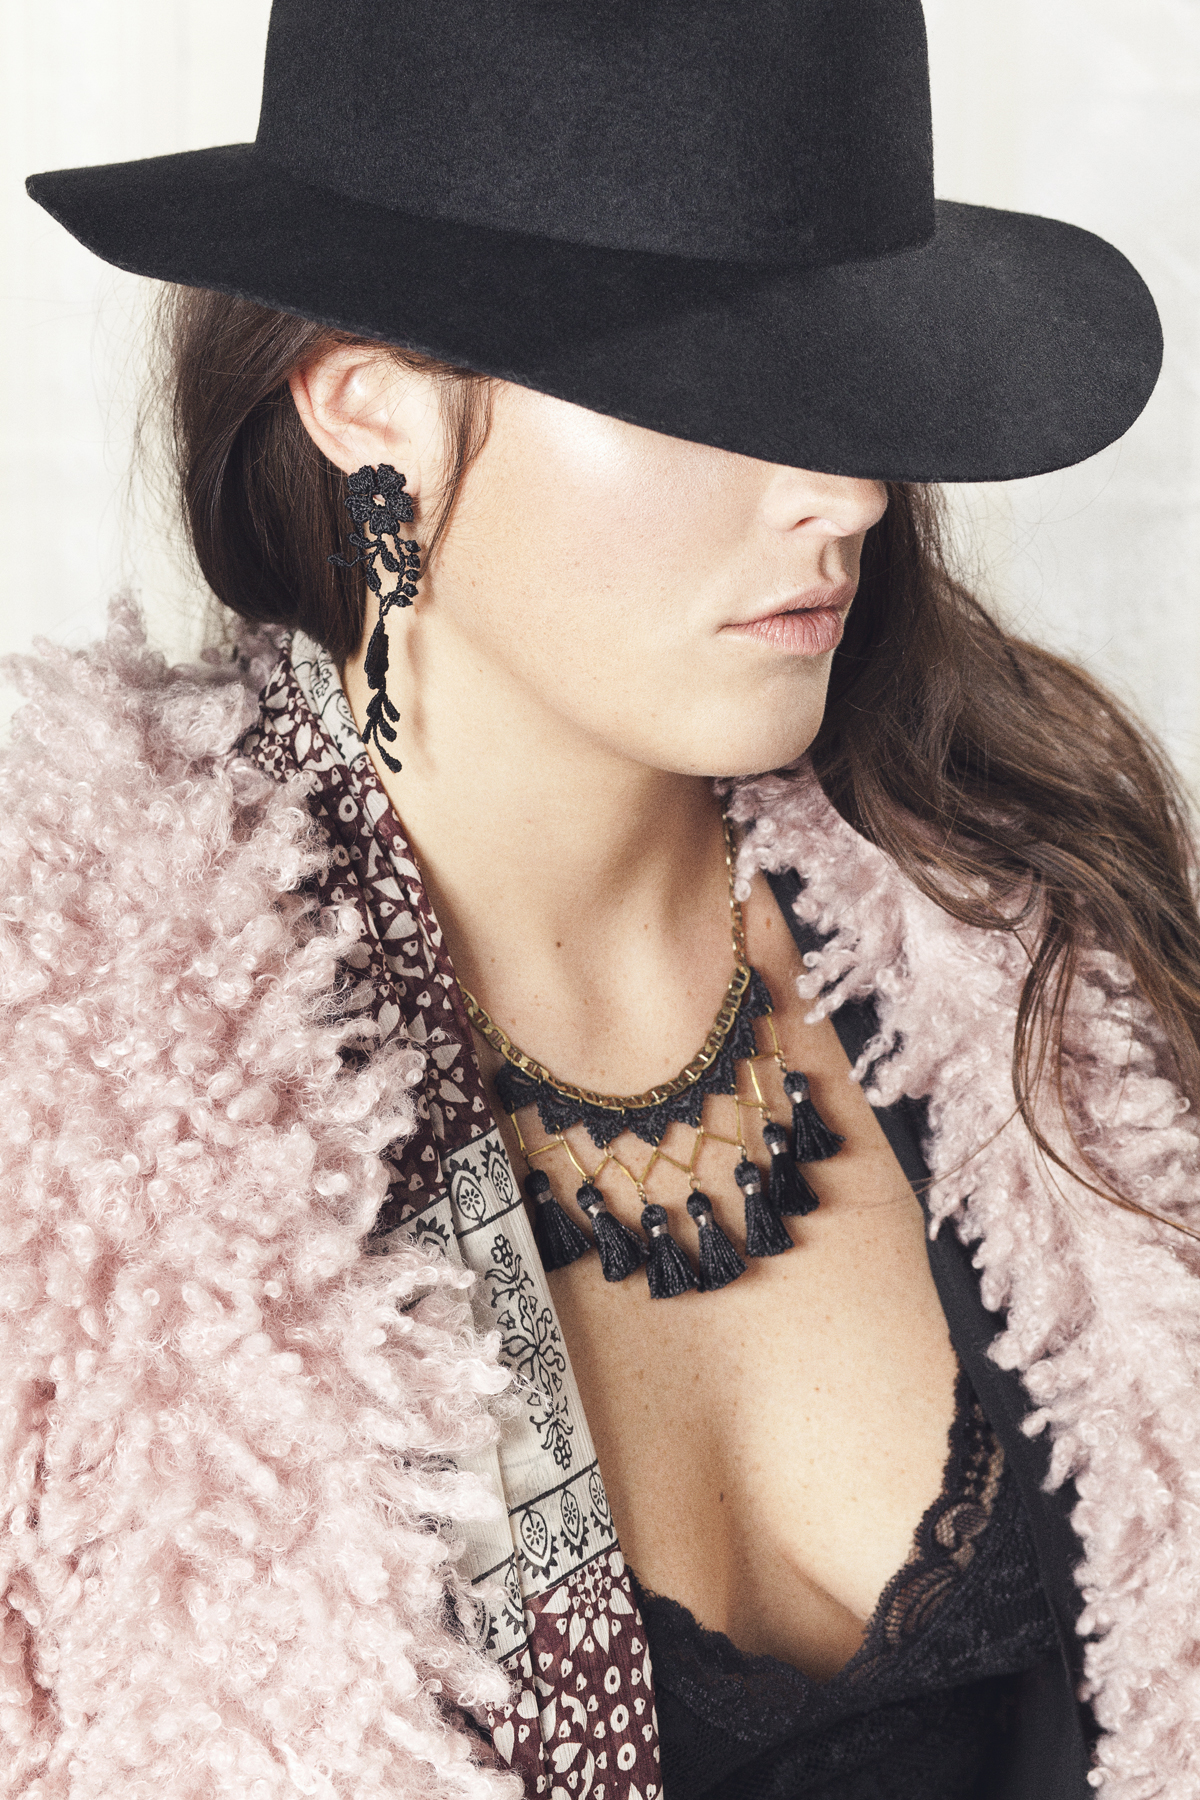 Hollyhock earrings (details here) +  Marrakech necklace (details here  )